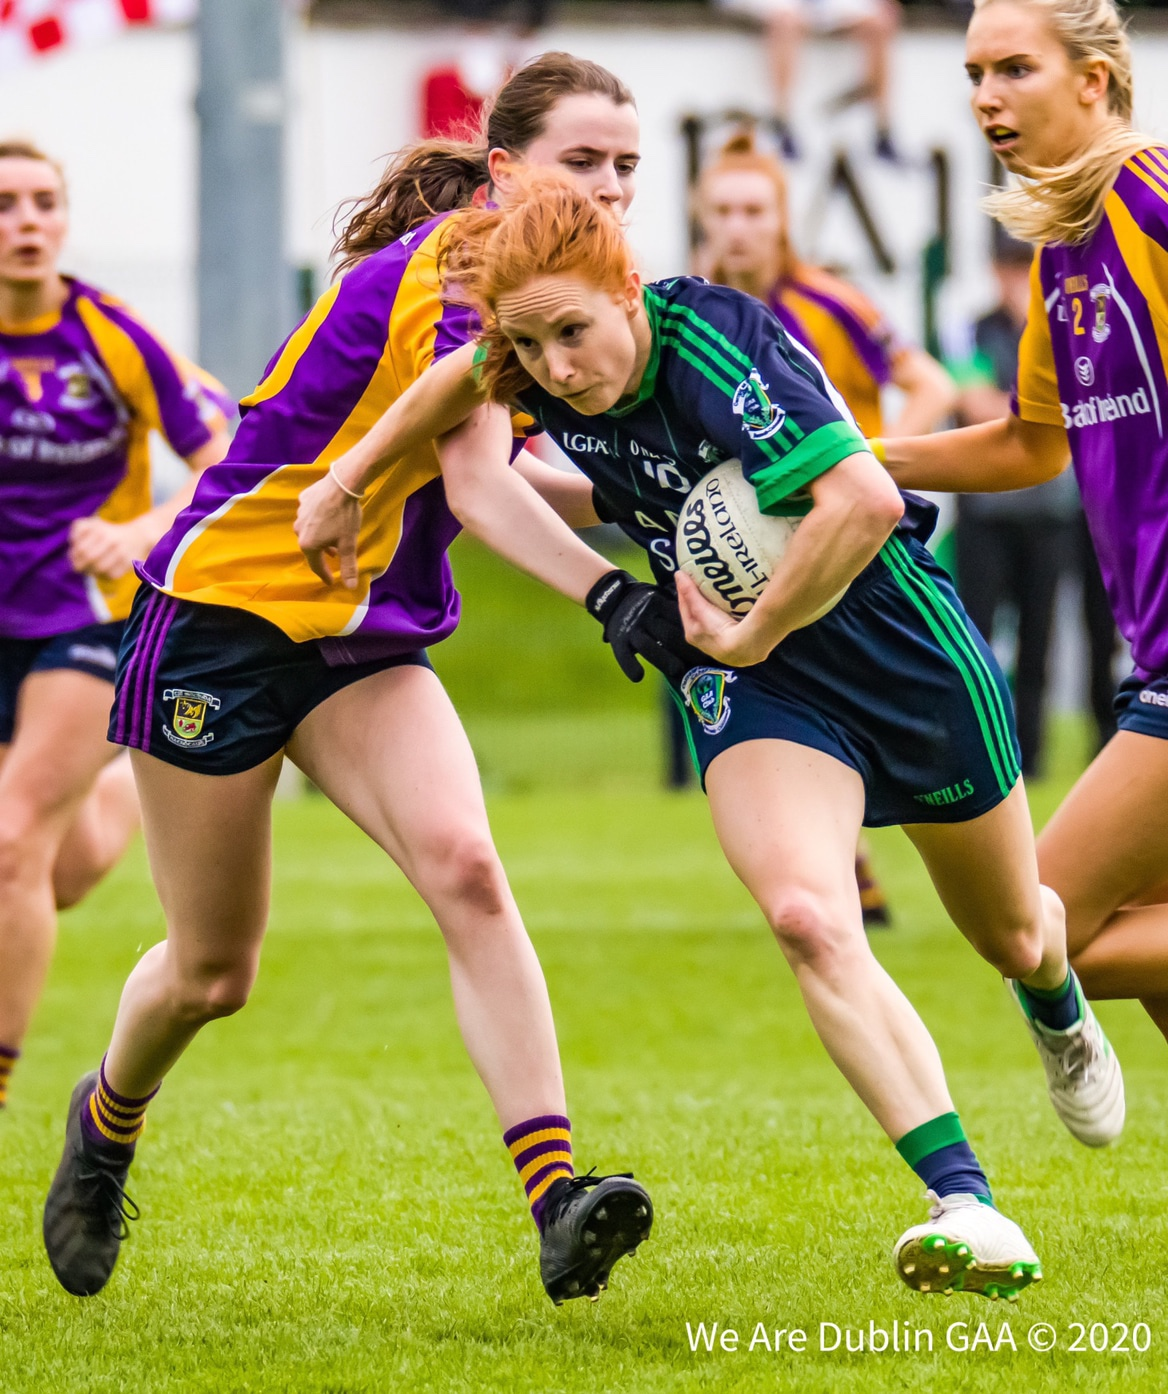 A Foxrock Cabinteely player tries to break away from the attentions of a Kilmacud Crokes player, both sides played out a thriller in the Adult Cup last night with Foxrock finding themselves among the winners as the Adult Cup Round 1 results poured in.